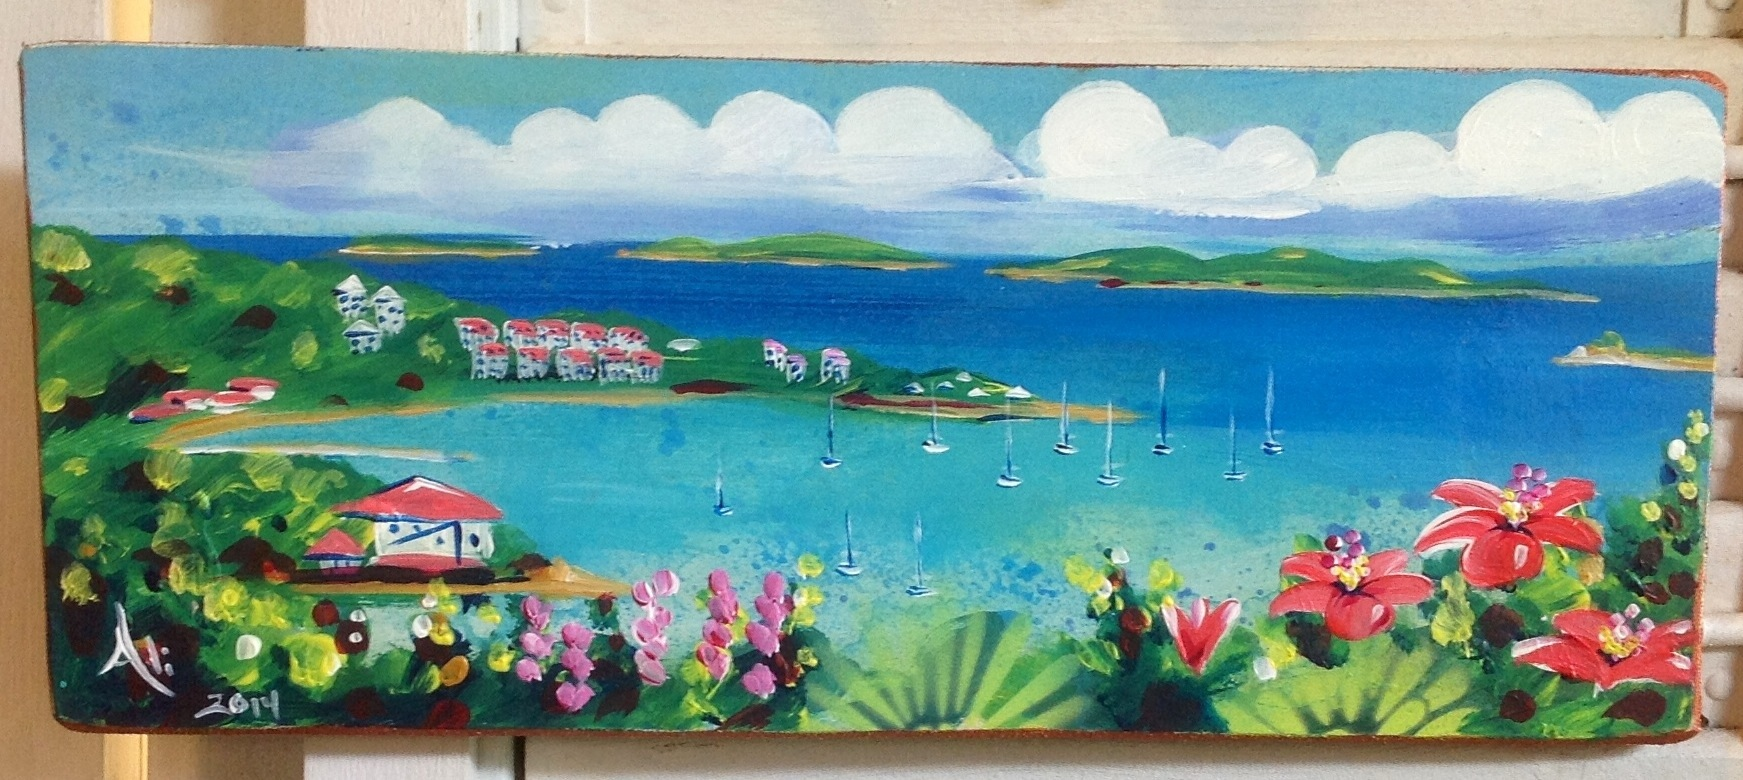 St John Usvi Artwork on beachy decor